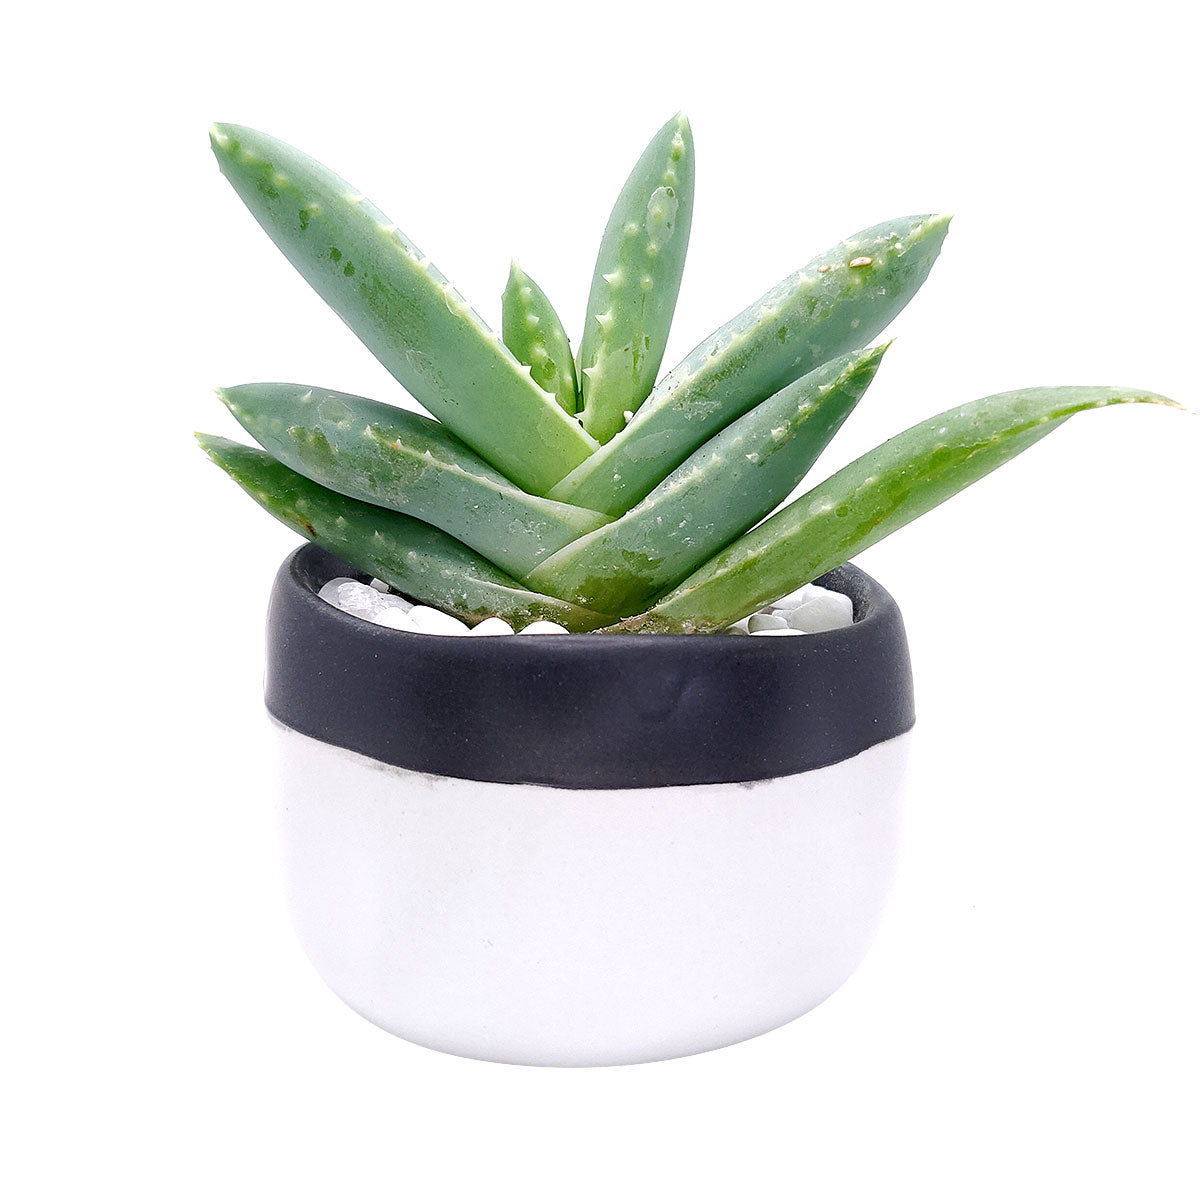 Bi-color Glaze Ceramic Pot for sale, Ceramic pot for succulent and cactus, Plant pot with minimalist style, Modern style home decor ideas, Flower pot for sale, Mini pot for plant